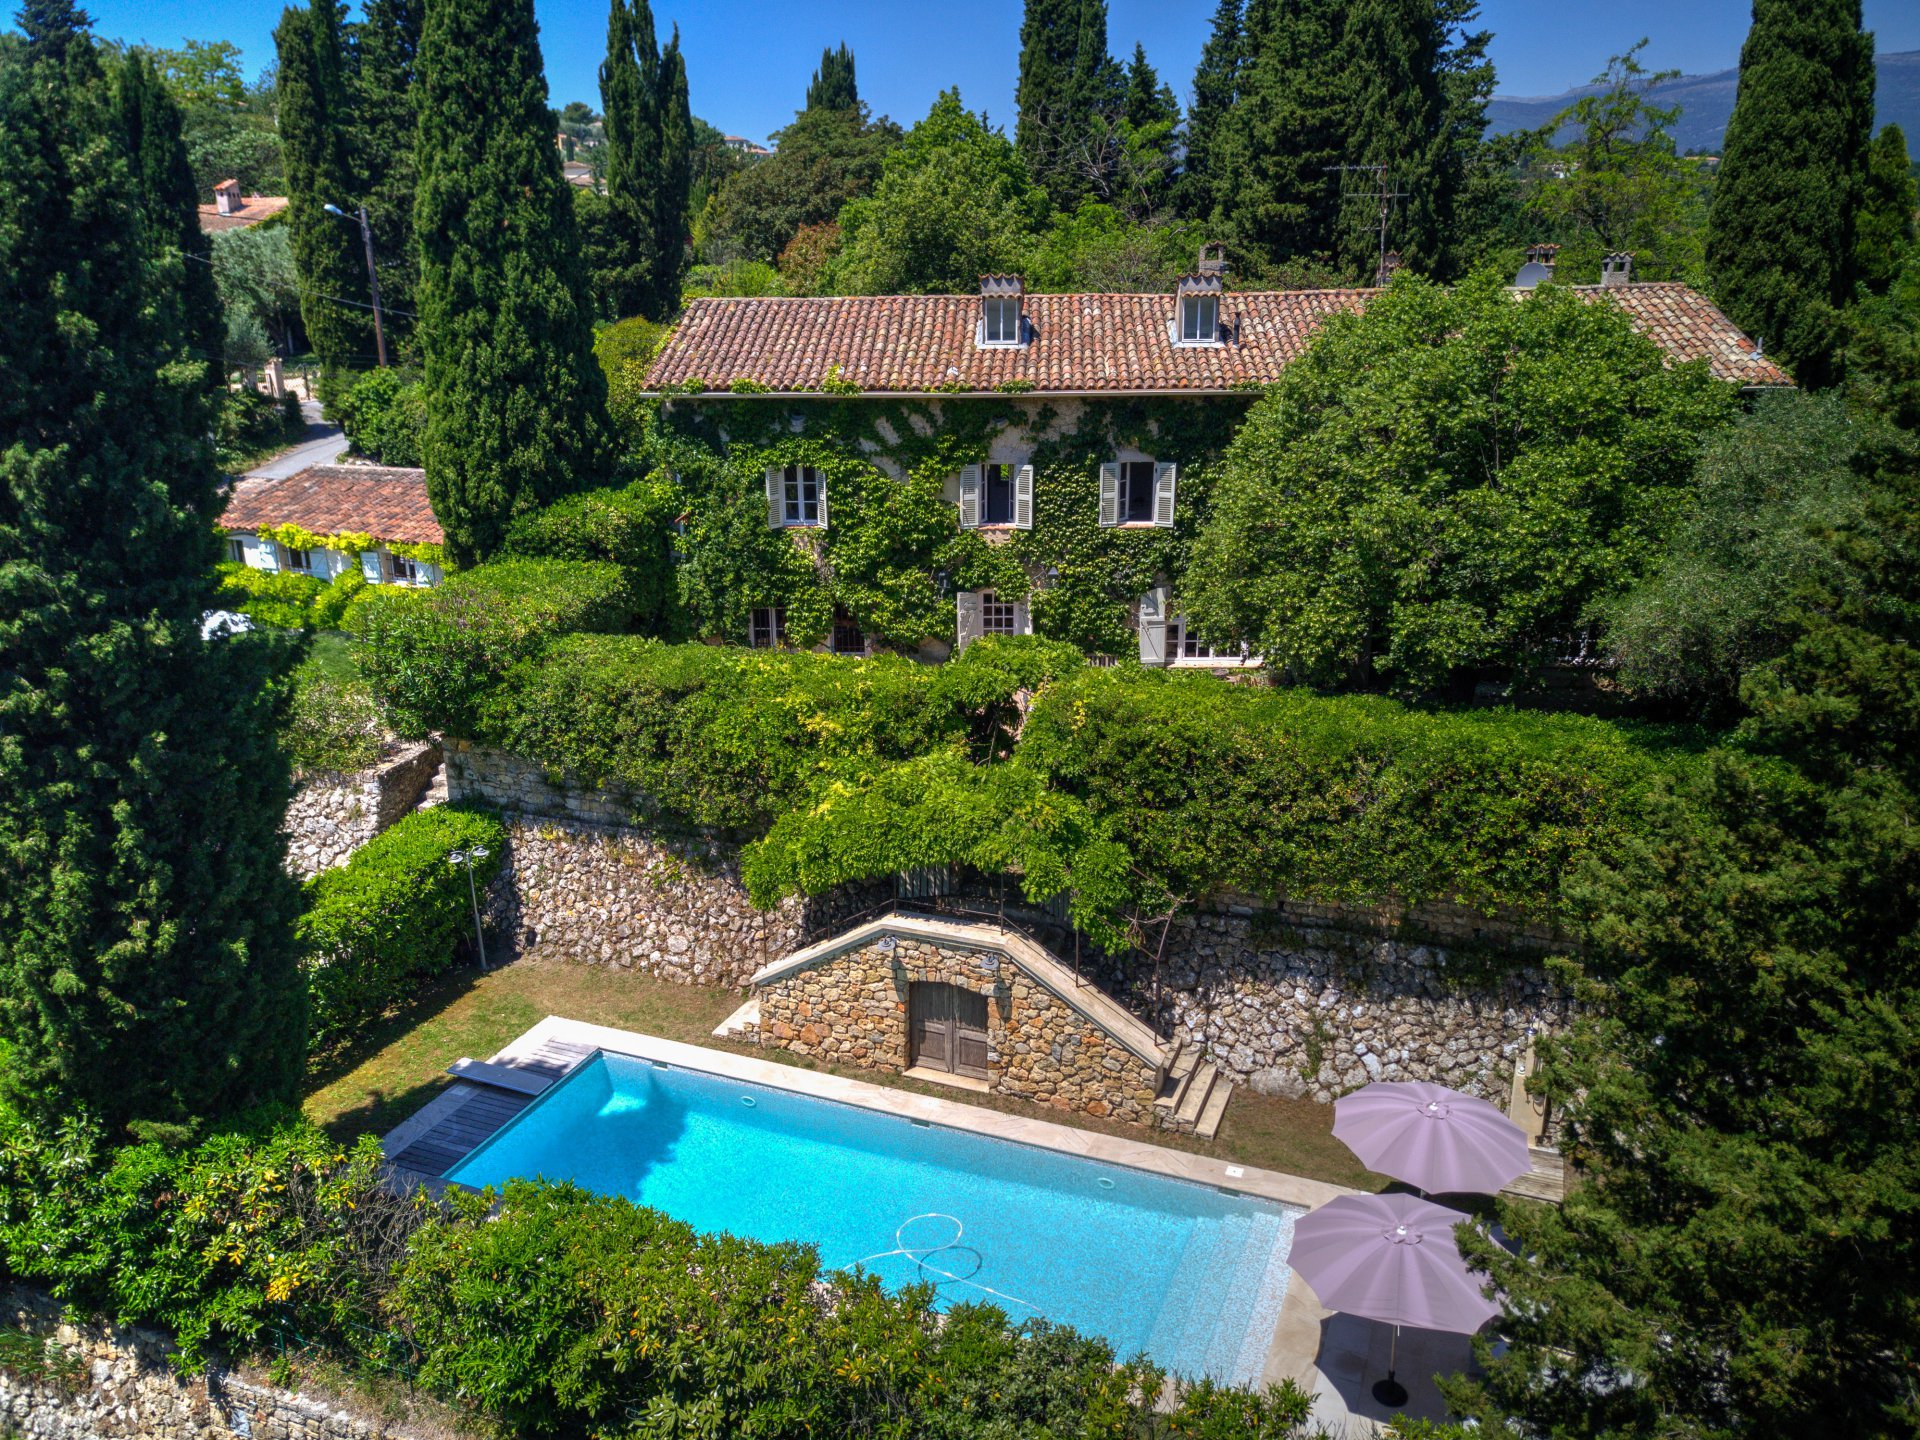 VALBONNE : 18th Century Stone-built farmhouse within walking distance from Valbonne village